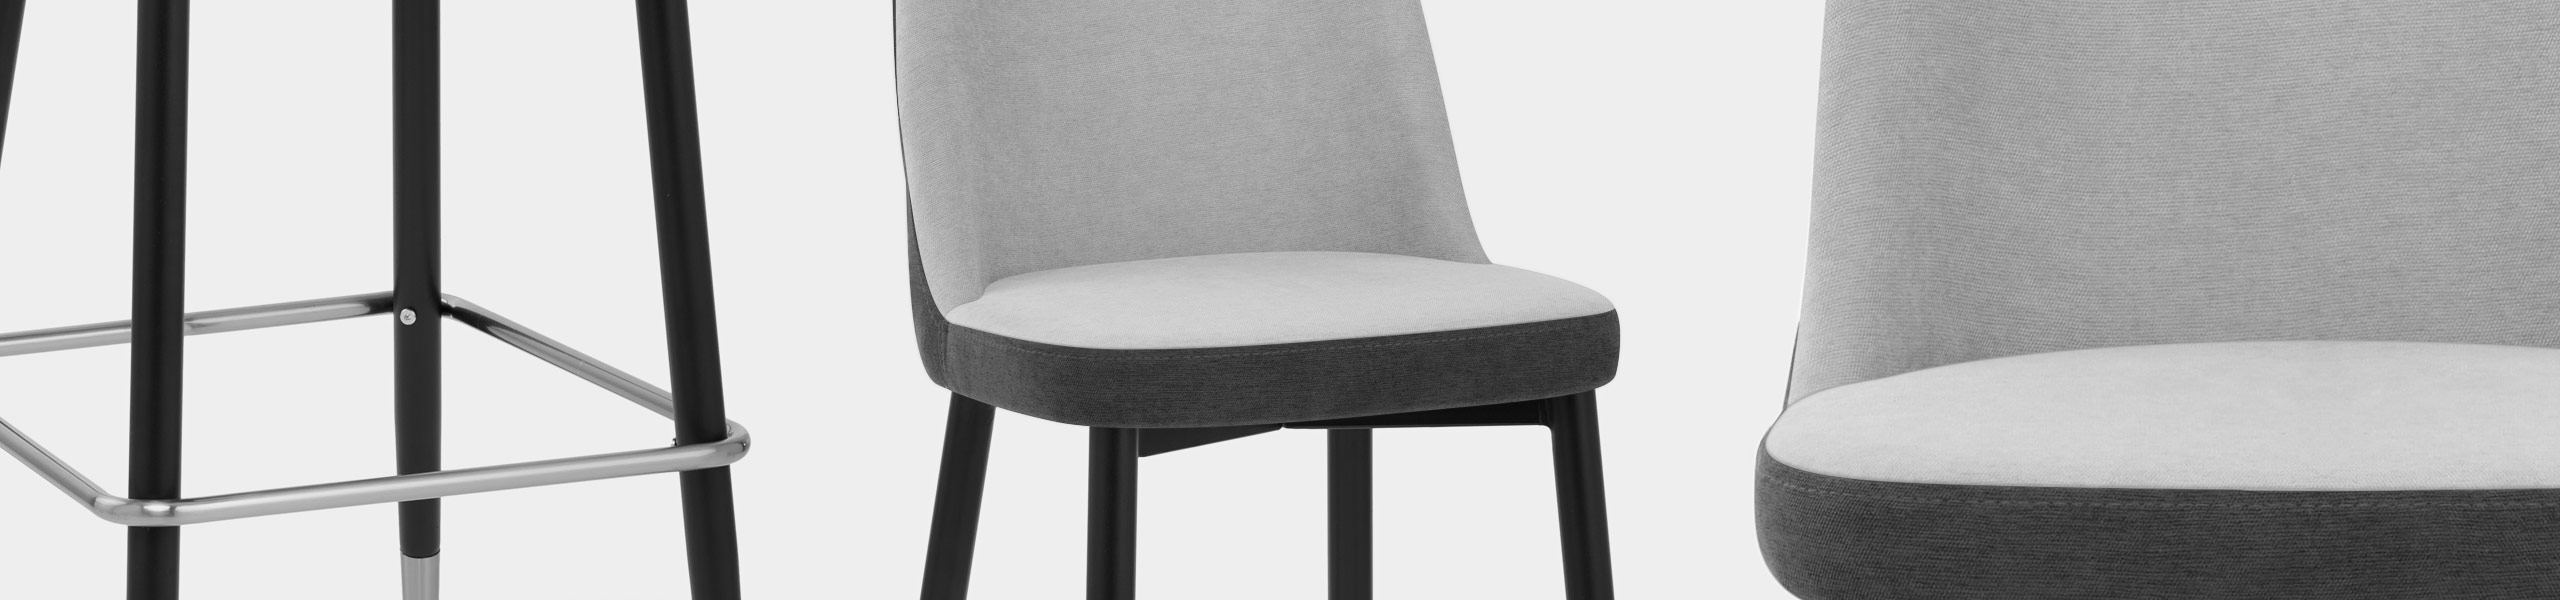 Hudson Stool Charcoal & Grey Fabric Video Banner